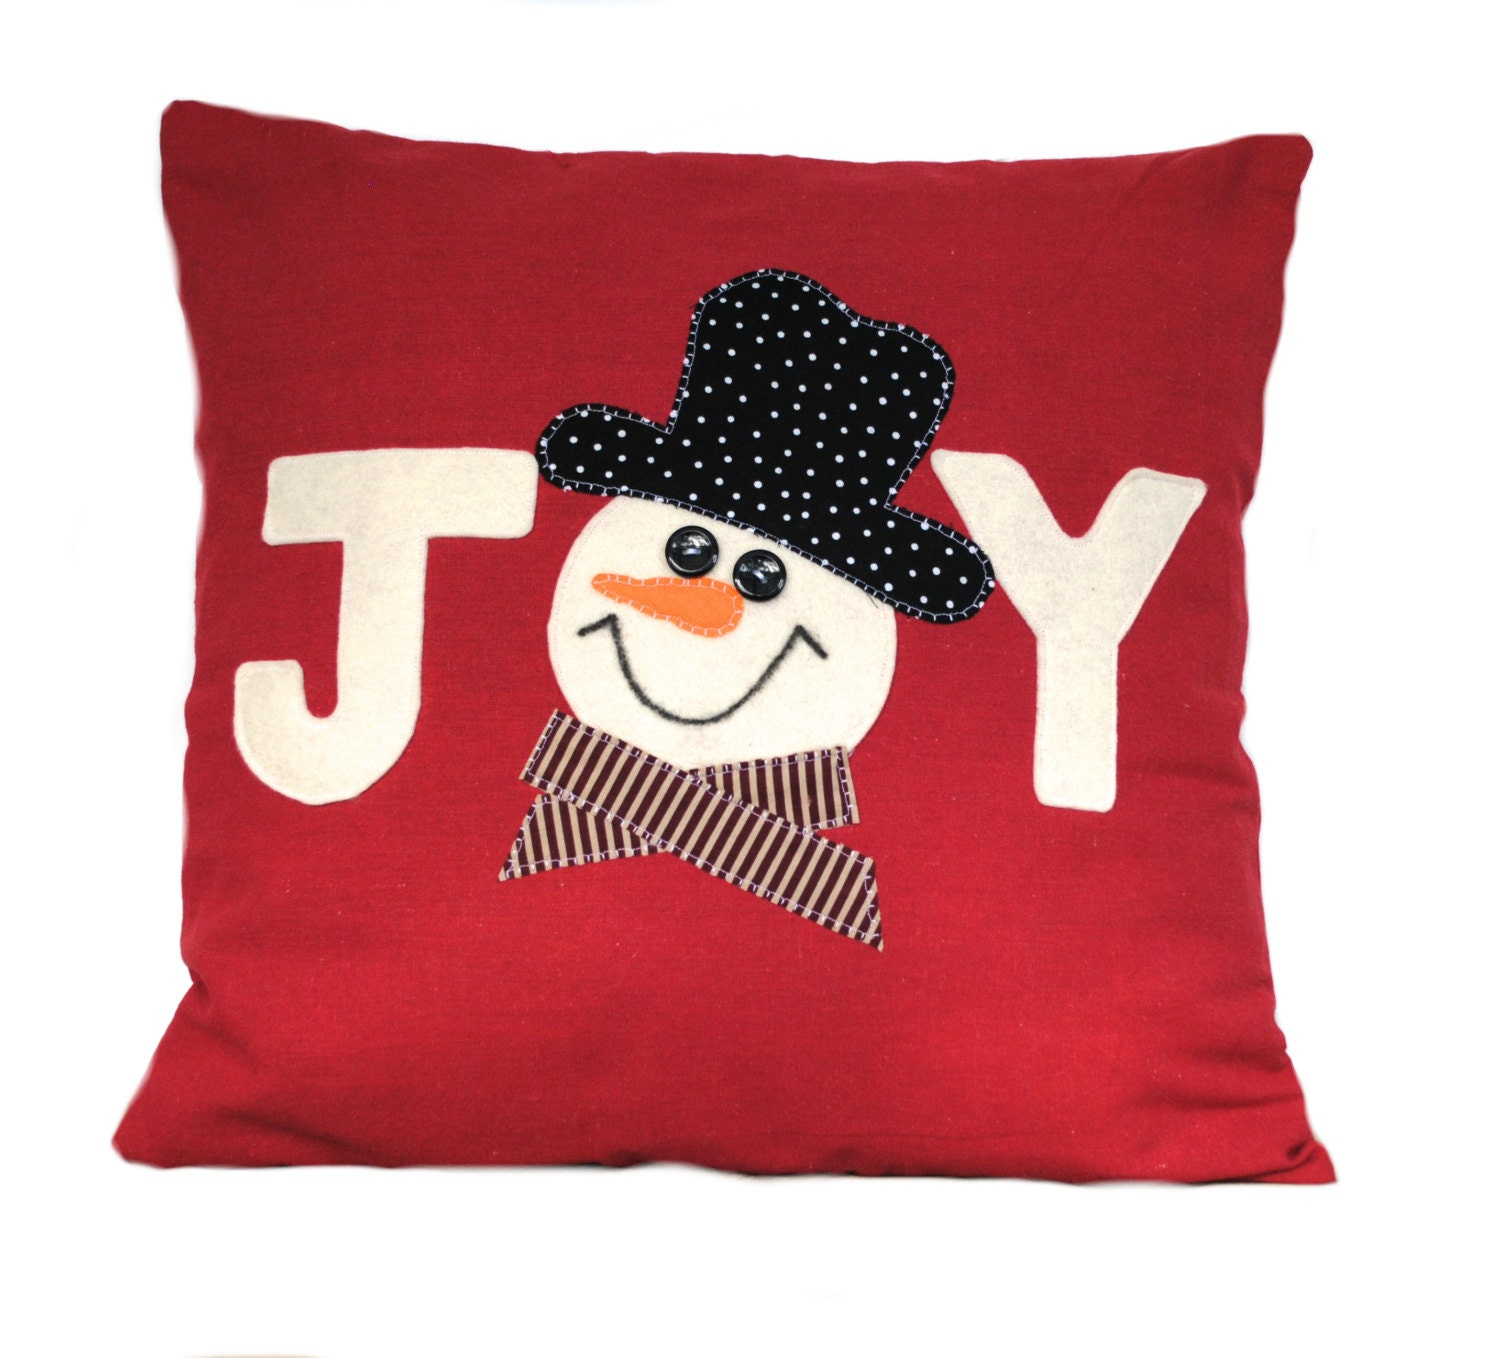 SALE Snowman Christmas Pillow cover holiday pillow